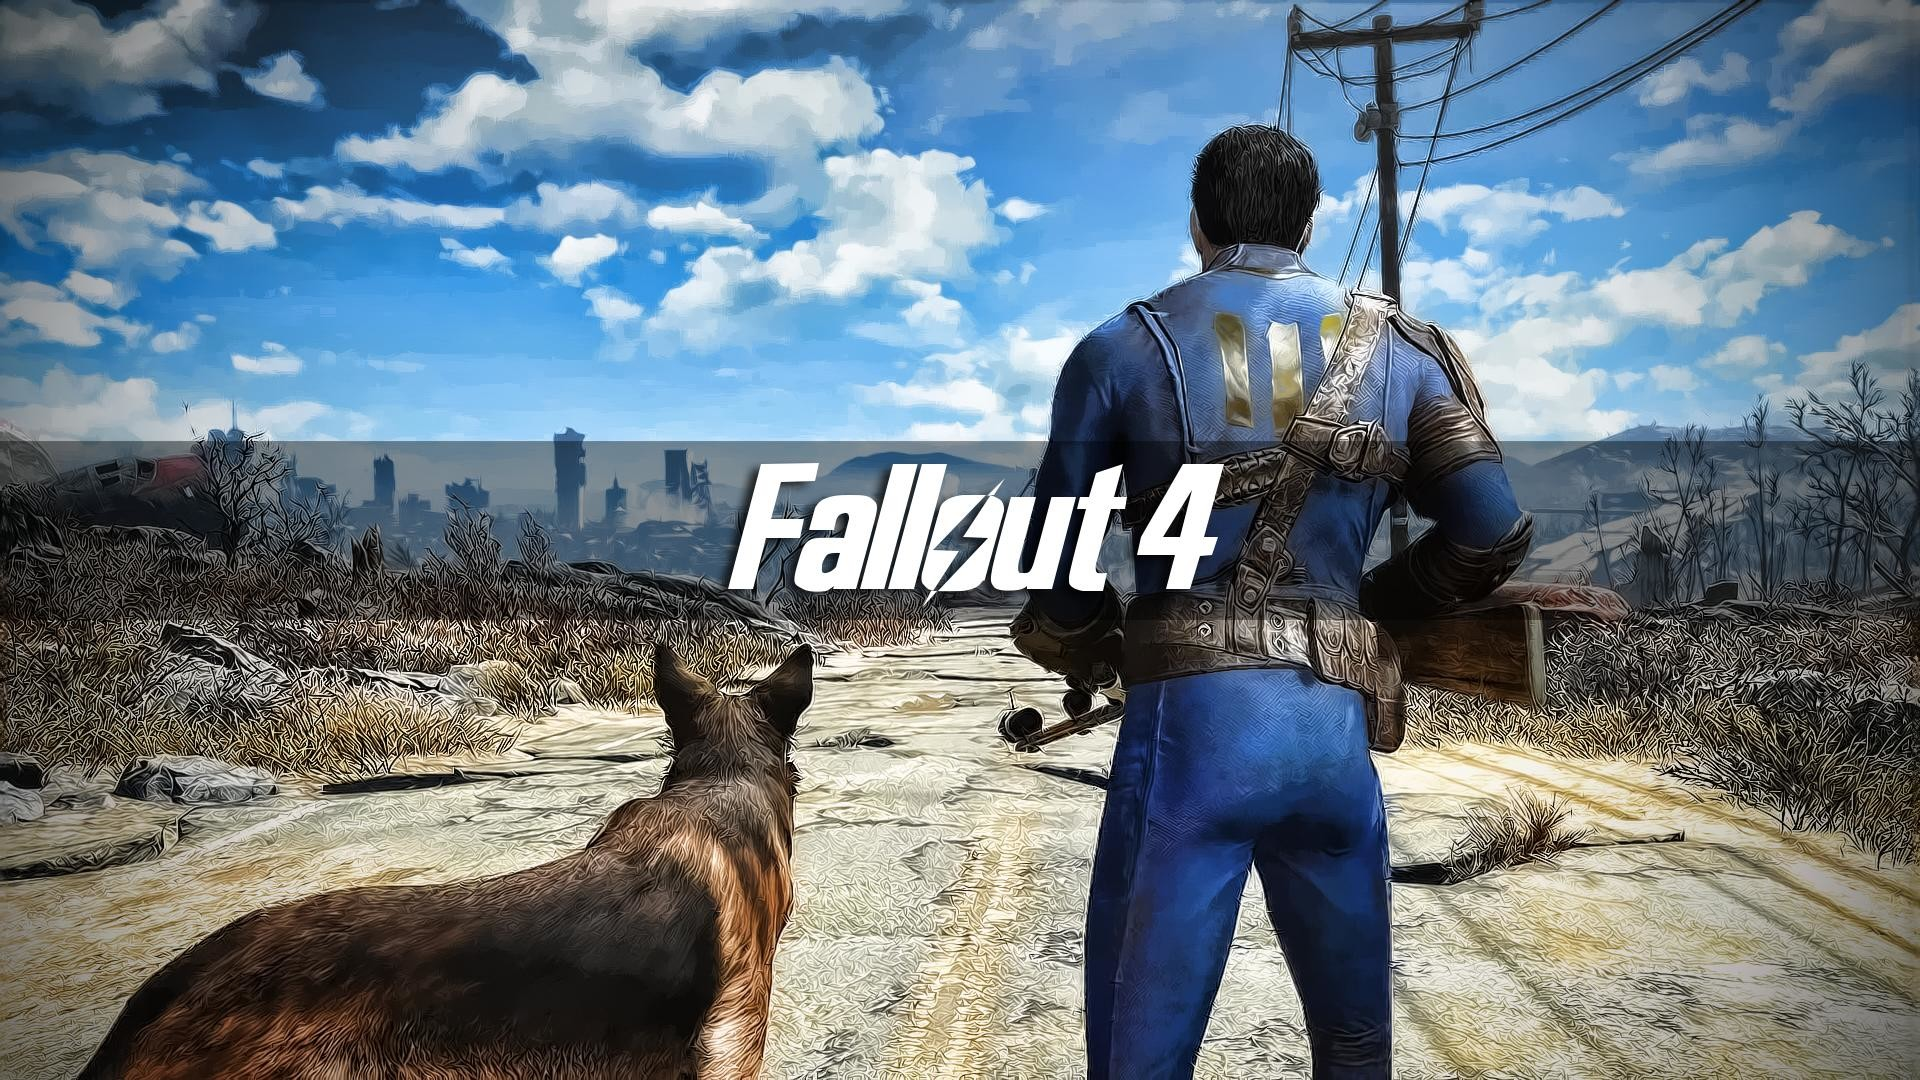 Fallout 4 background